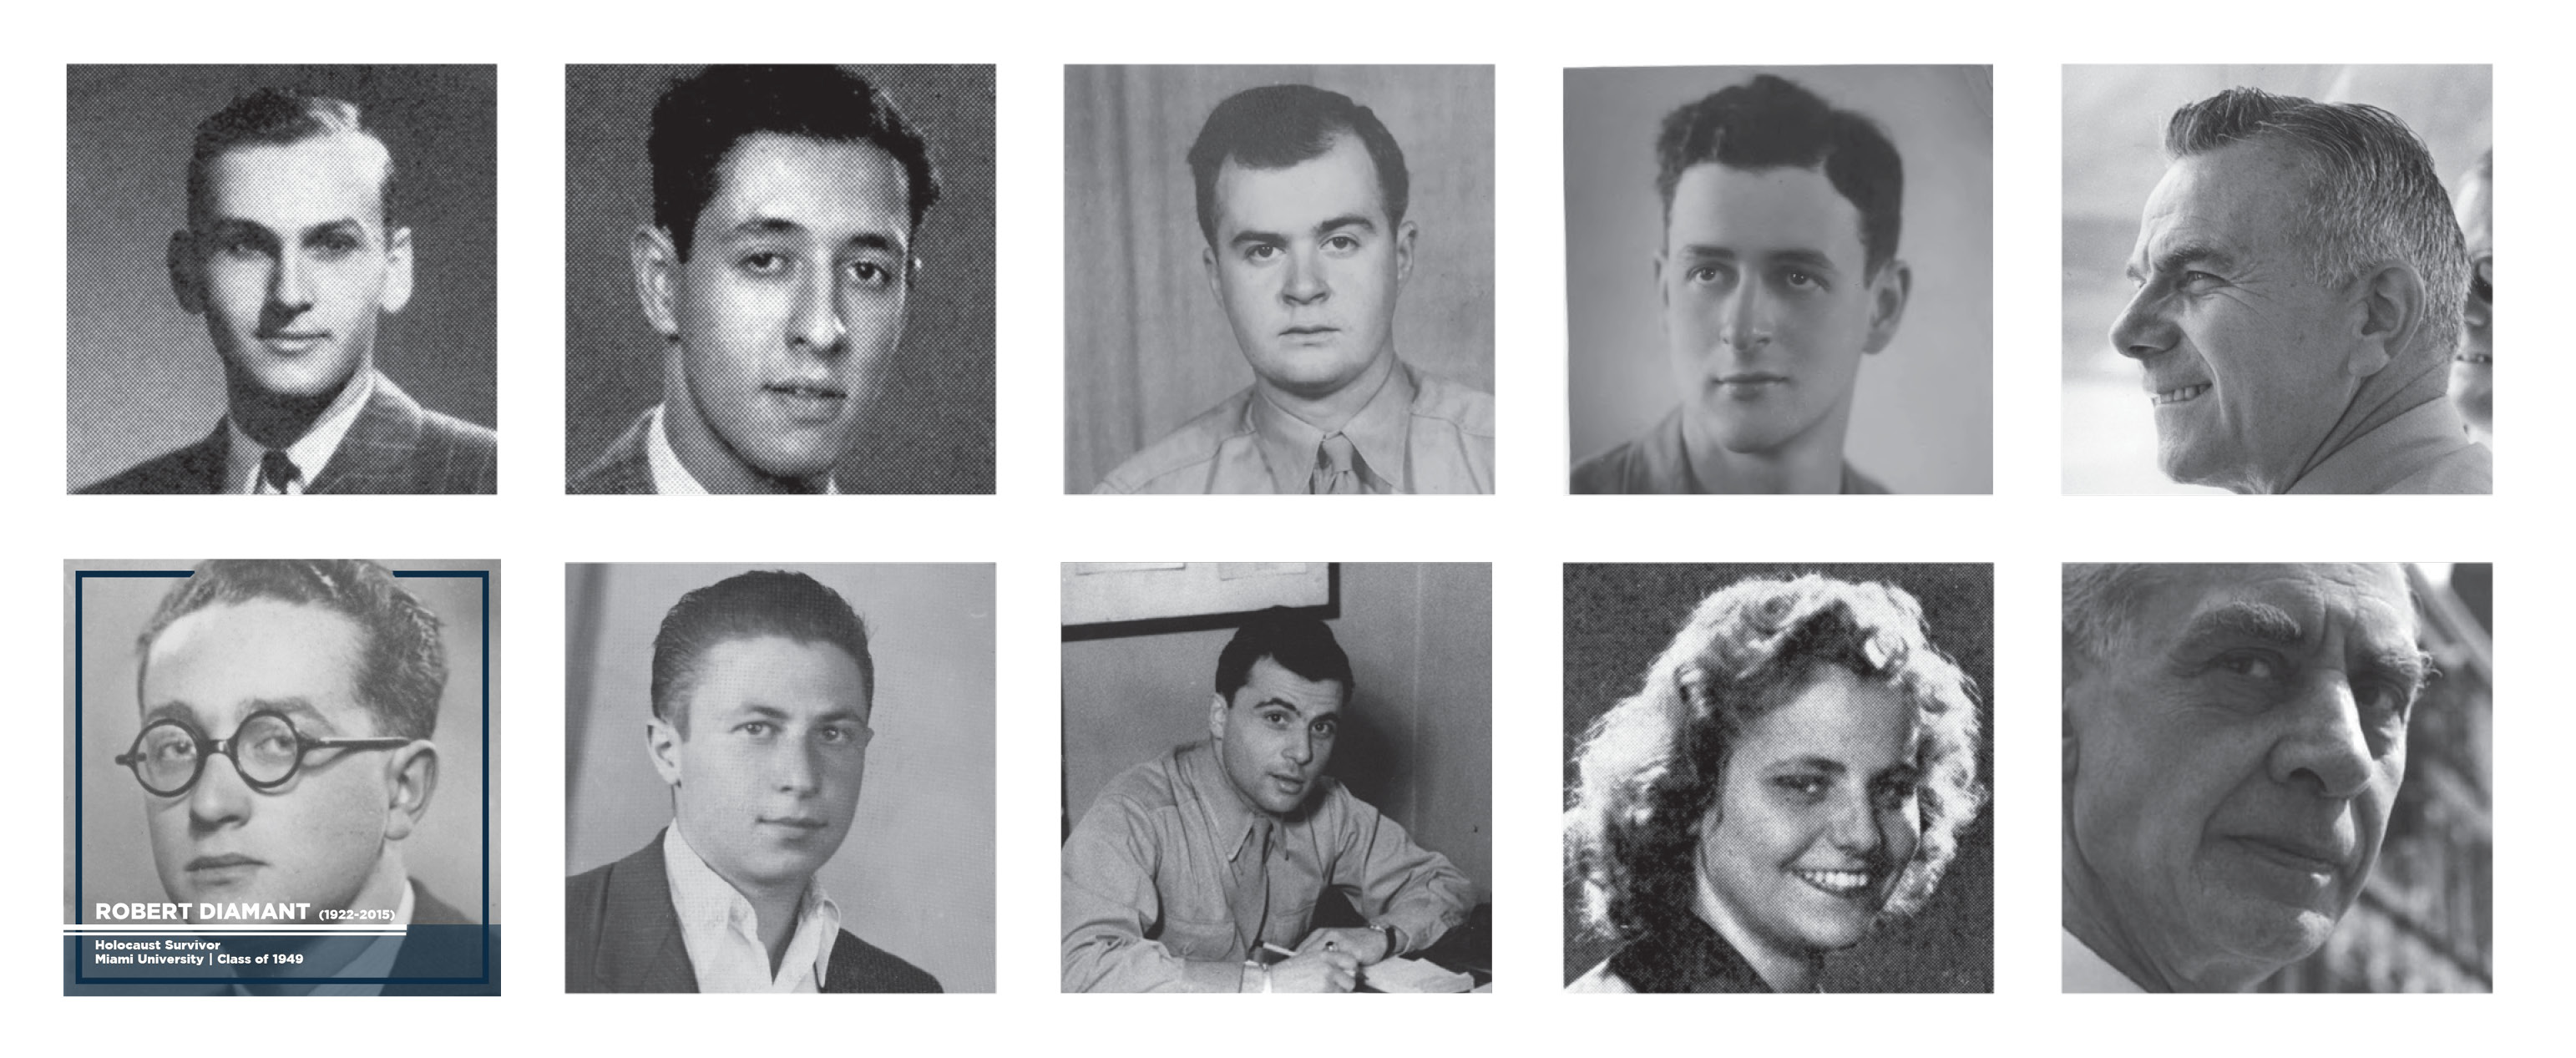 Nine black and white portraits of the alumni and faculty featured in the exhibition Bearing Witness.  Robert Diamant's image is outlined in blue with the text -   Robert Diamant (1922—2015) Holocaust Survivor  Miami University, Class of 1949.